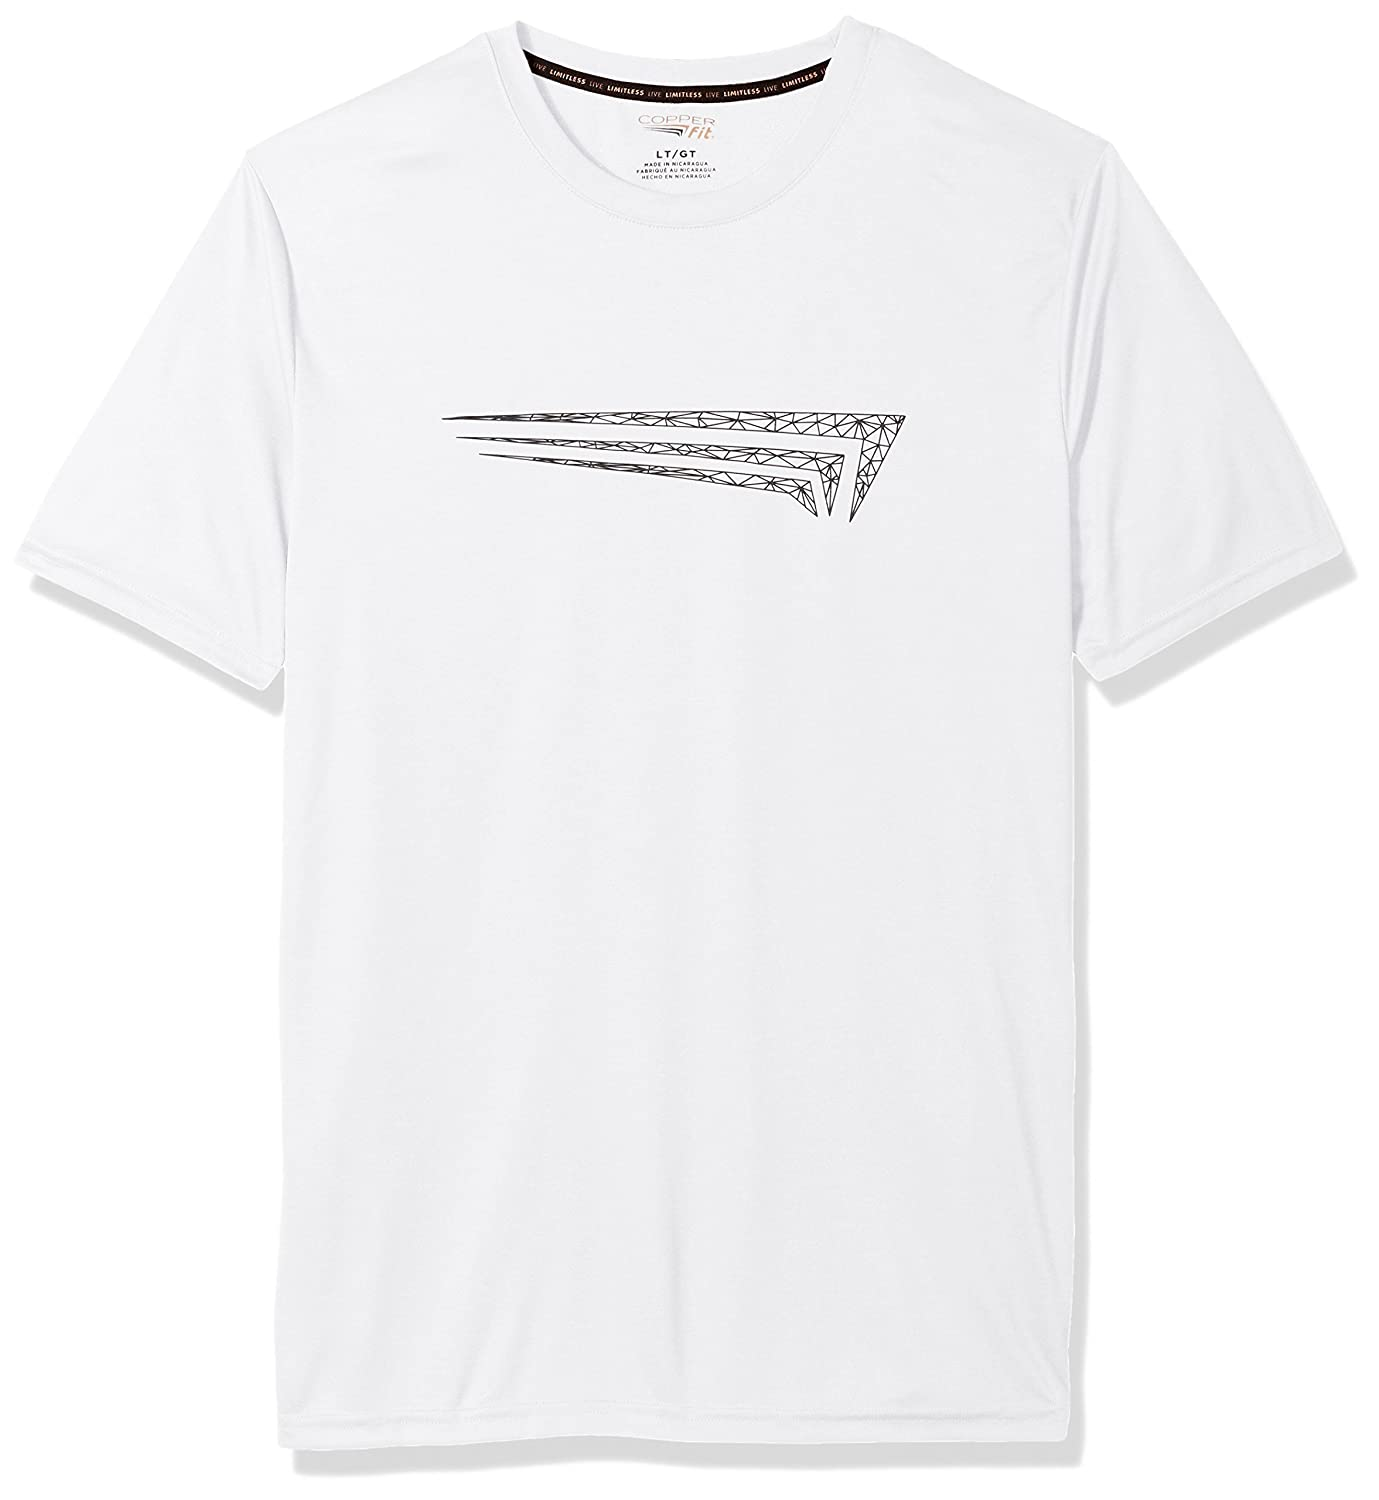 Copper Fit Mens Short Sleeve Graphic T-Shirt